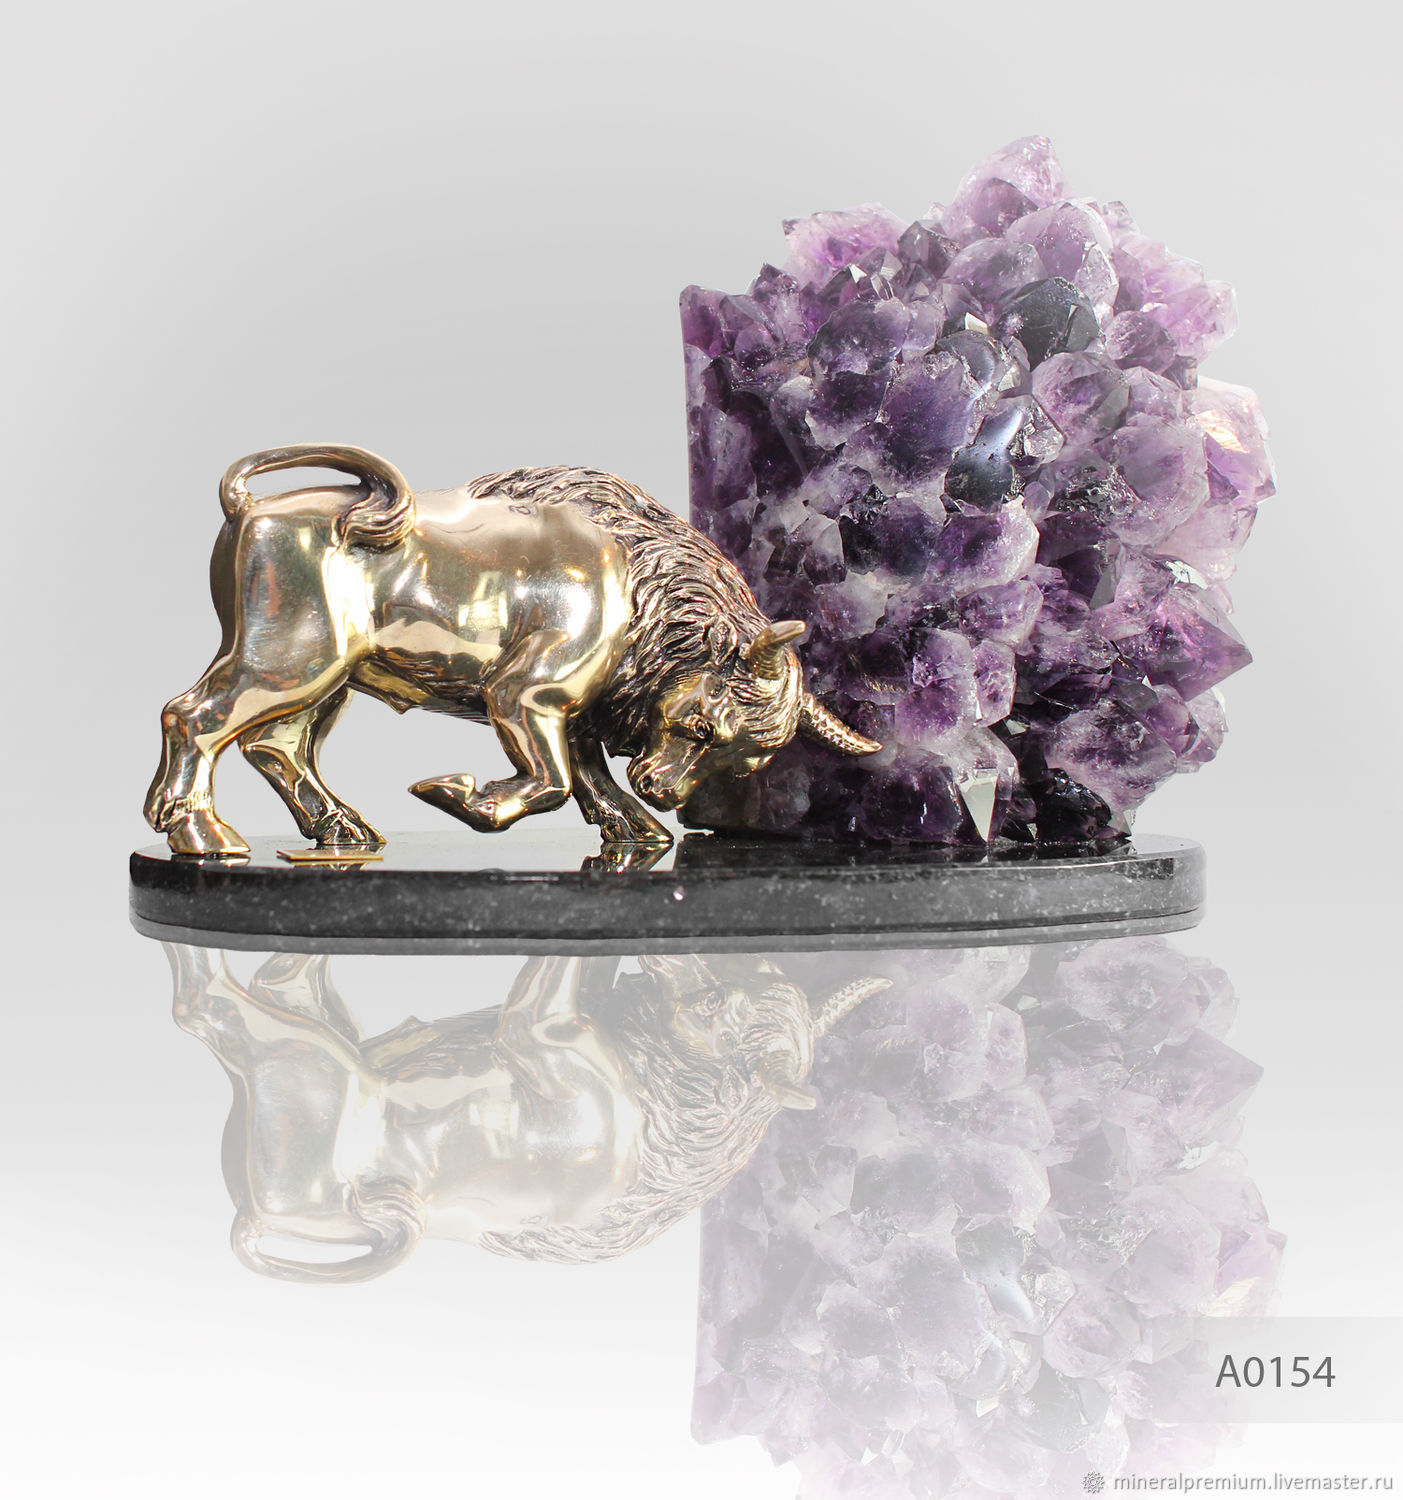 Taurus /Bull in FENG SHUI - a symbol of confidence, power and determination. Amethyst stabilizes the space and gives new impetus to the relations